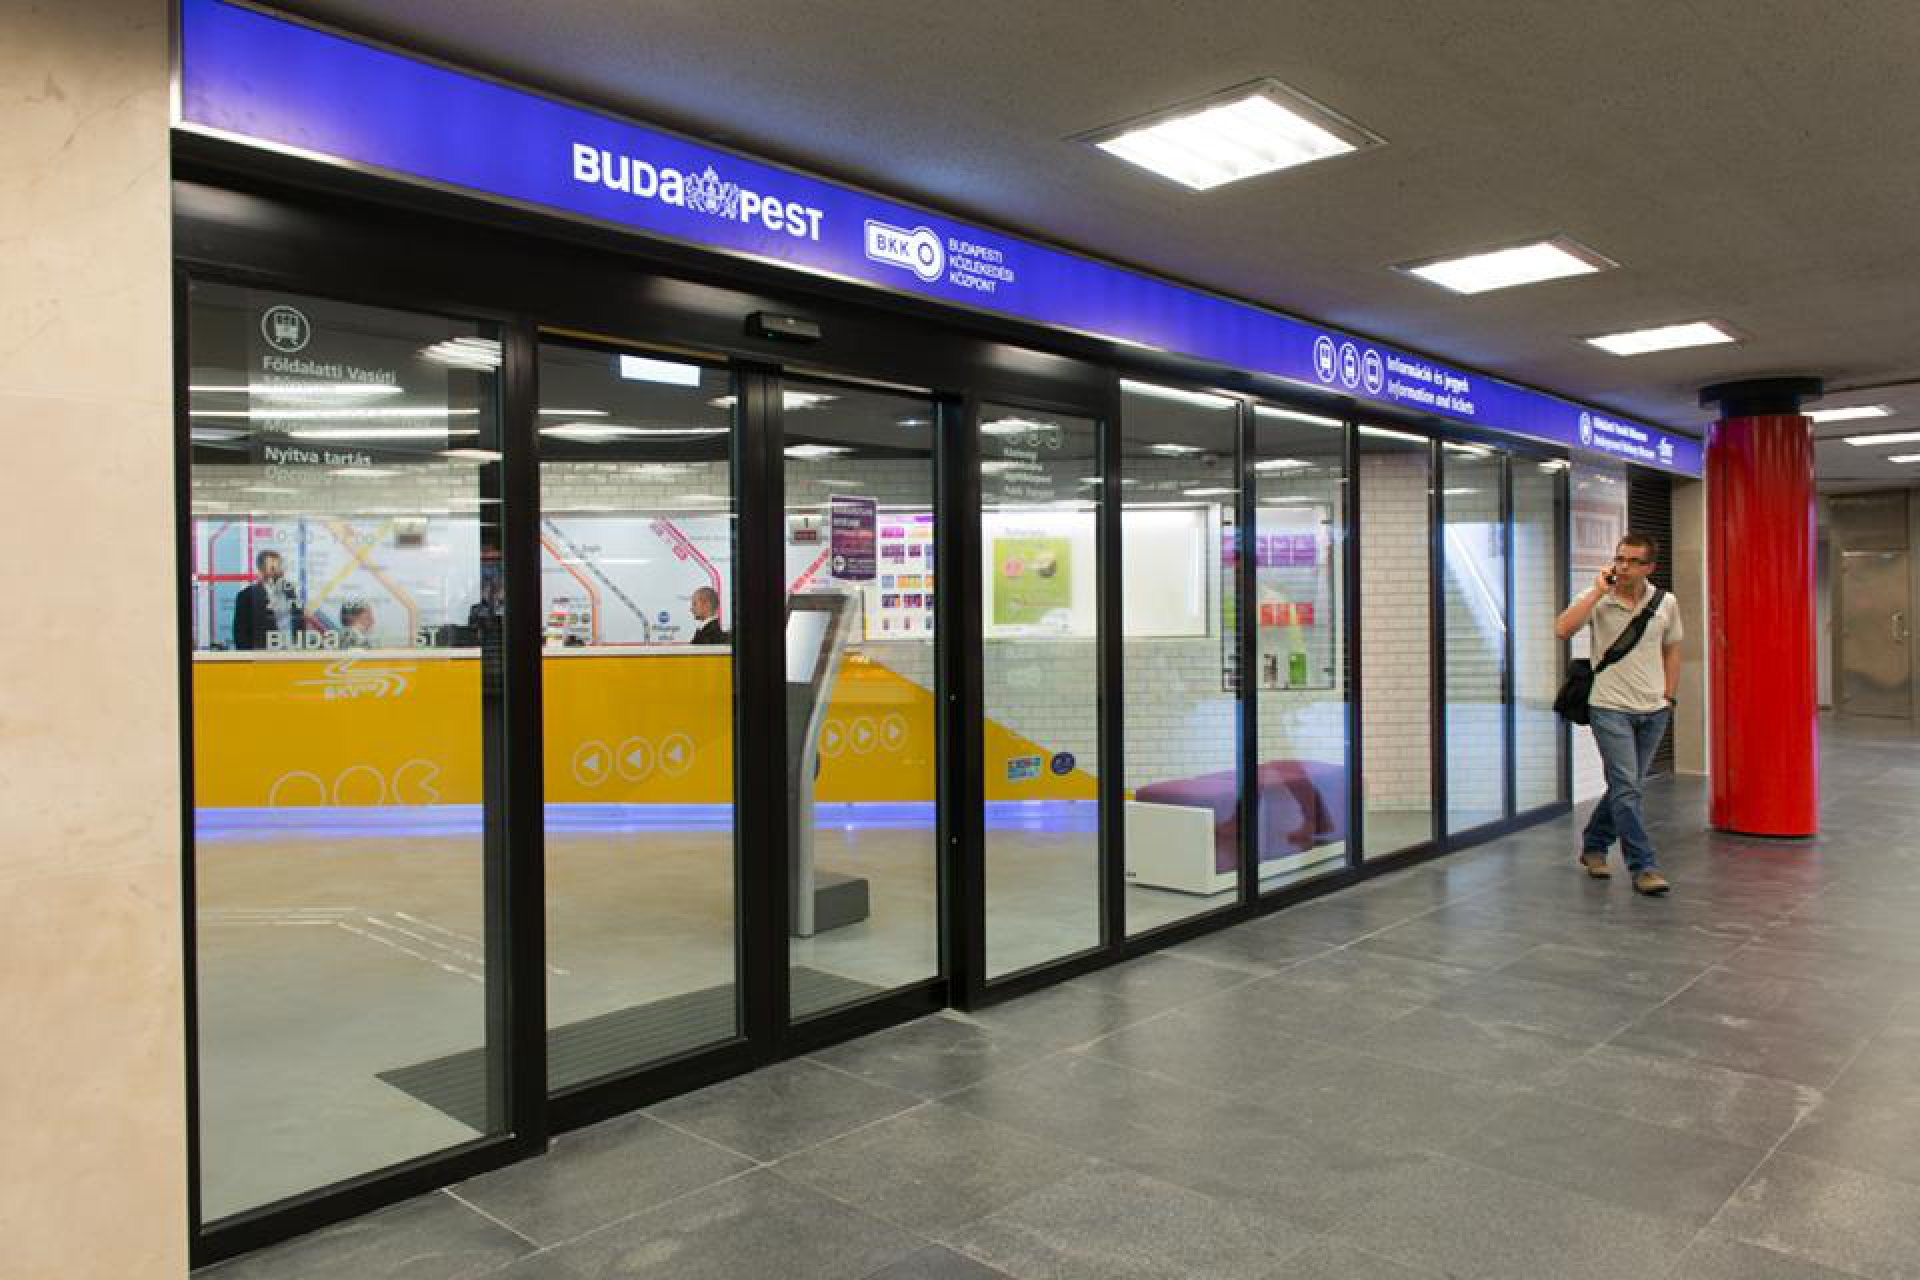 BKK Client center, Deák Ferenc subway station